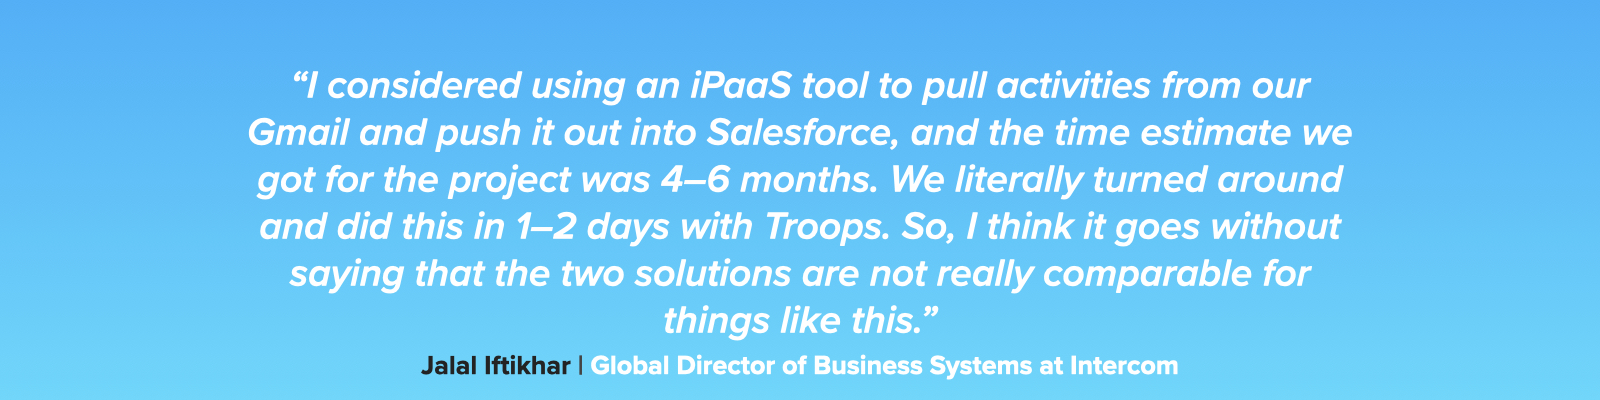 ipaas v. troops quote 6.001